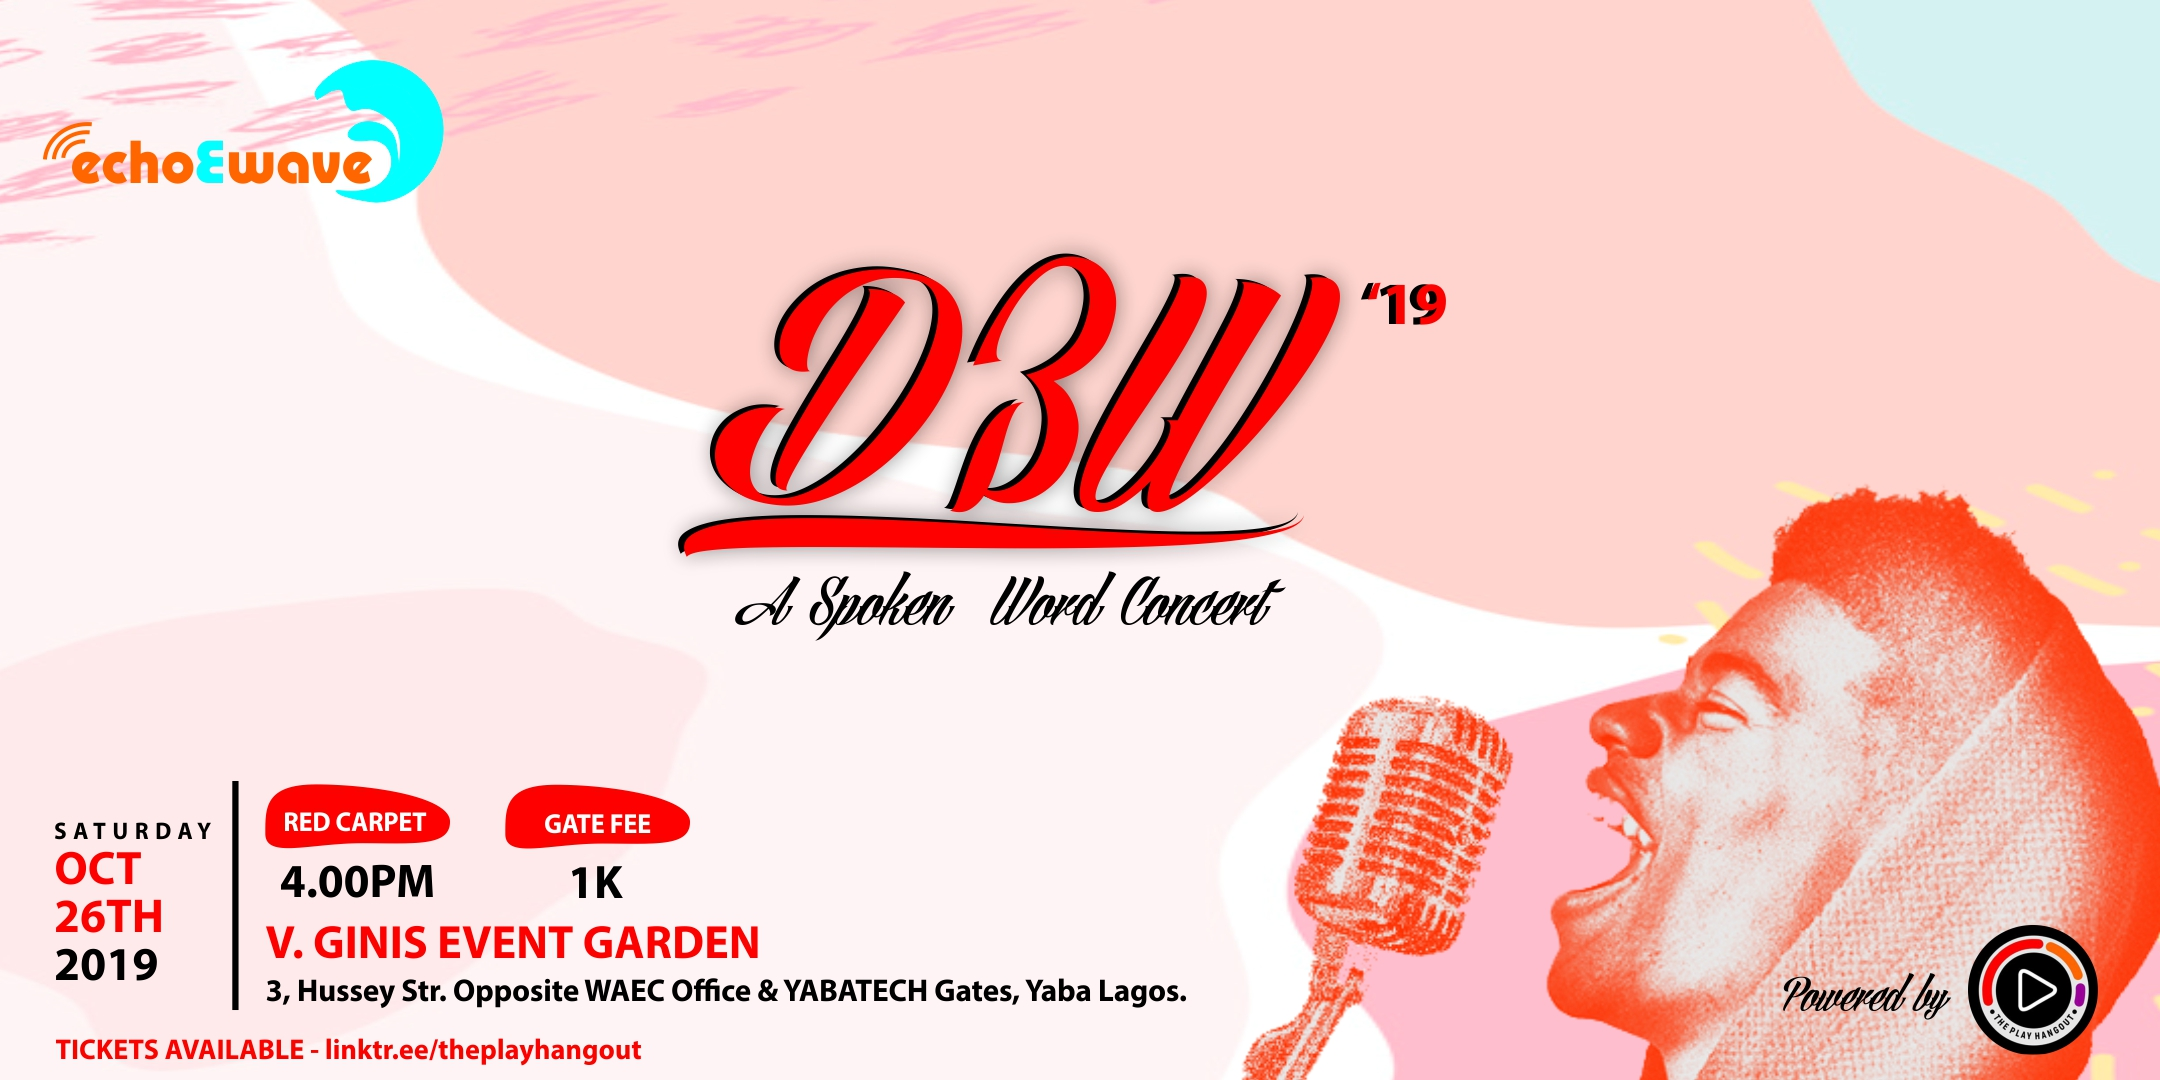 D3W SPOKEN WORD CONCERT Post free event in Nigeria using tickethub.ng, buy and sell tickets to event